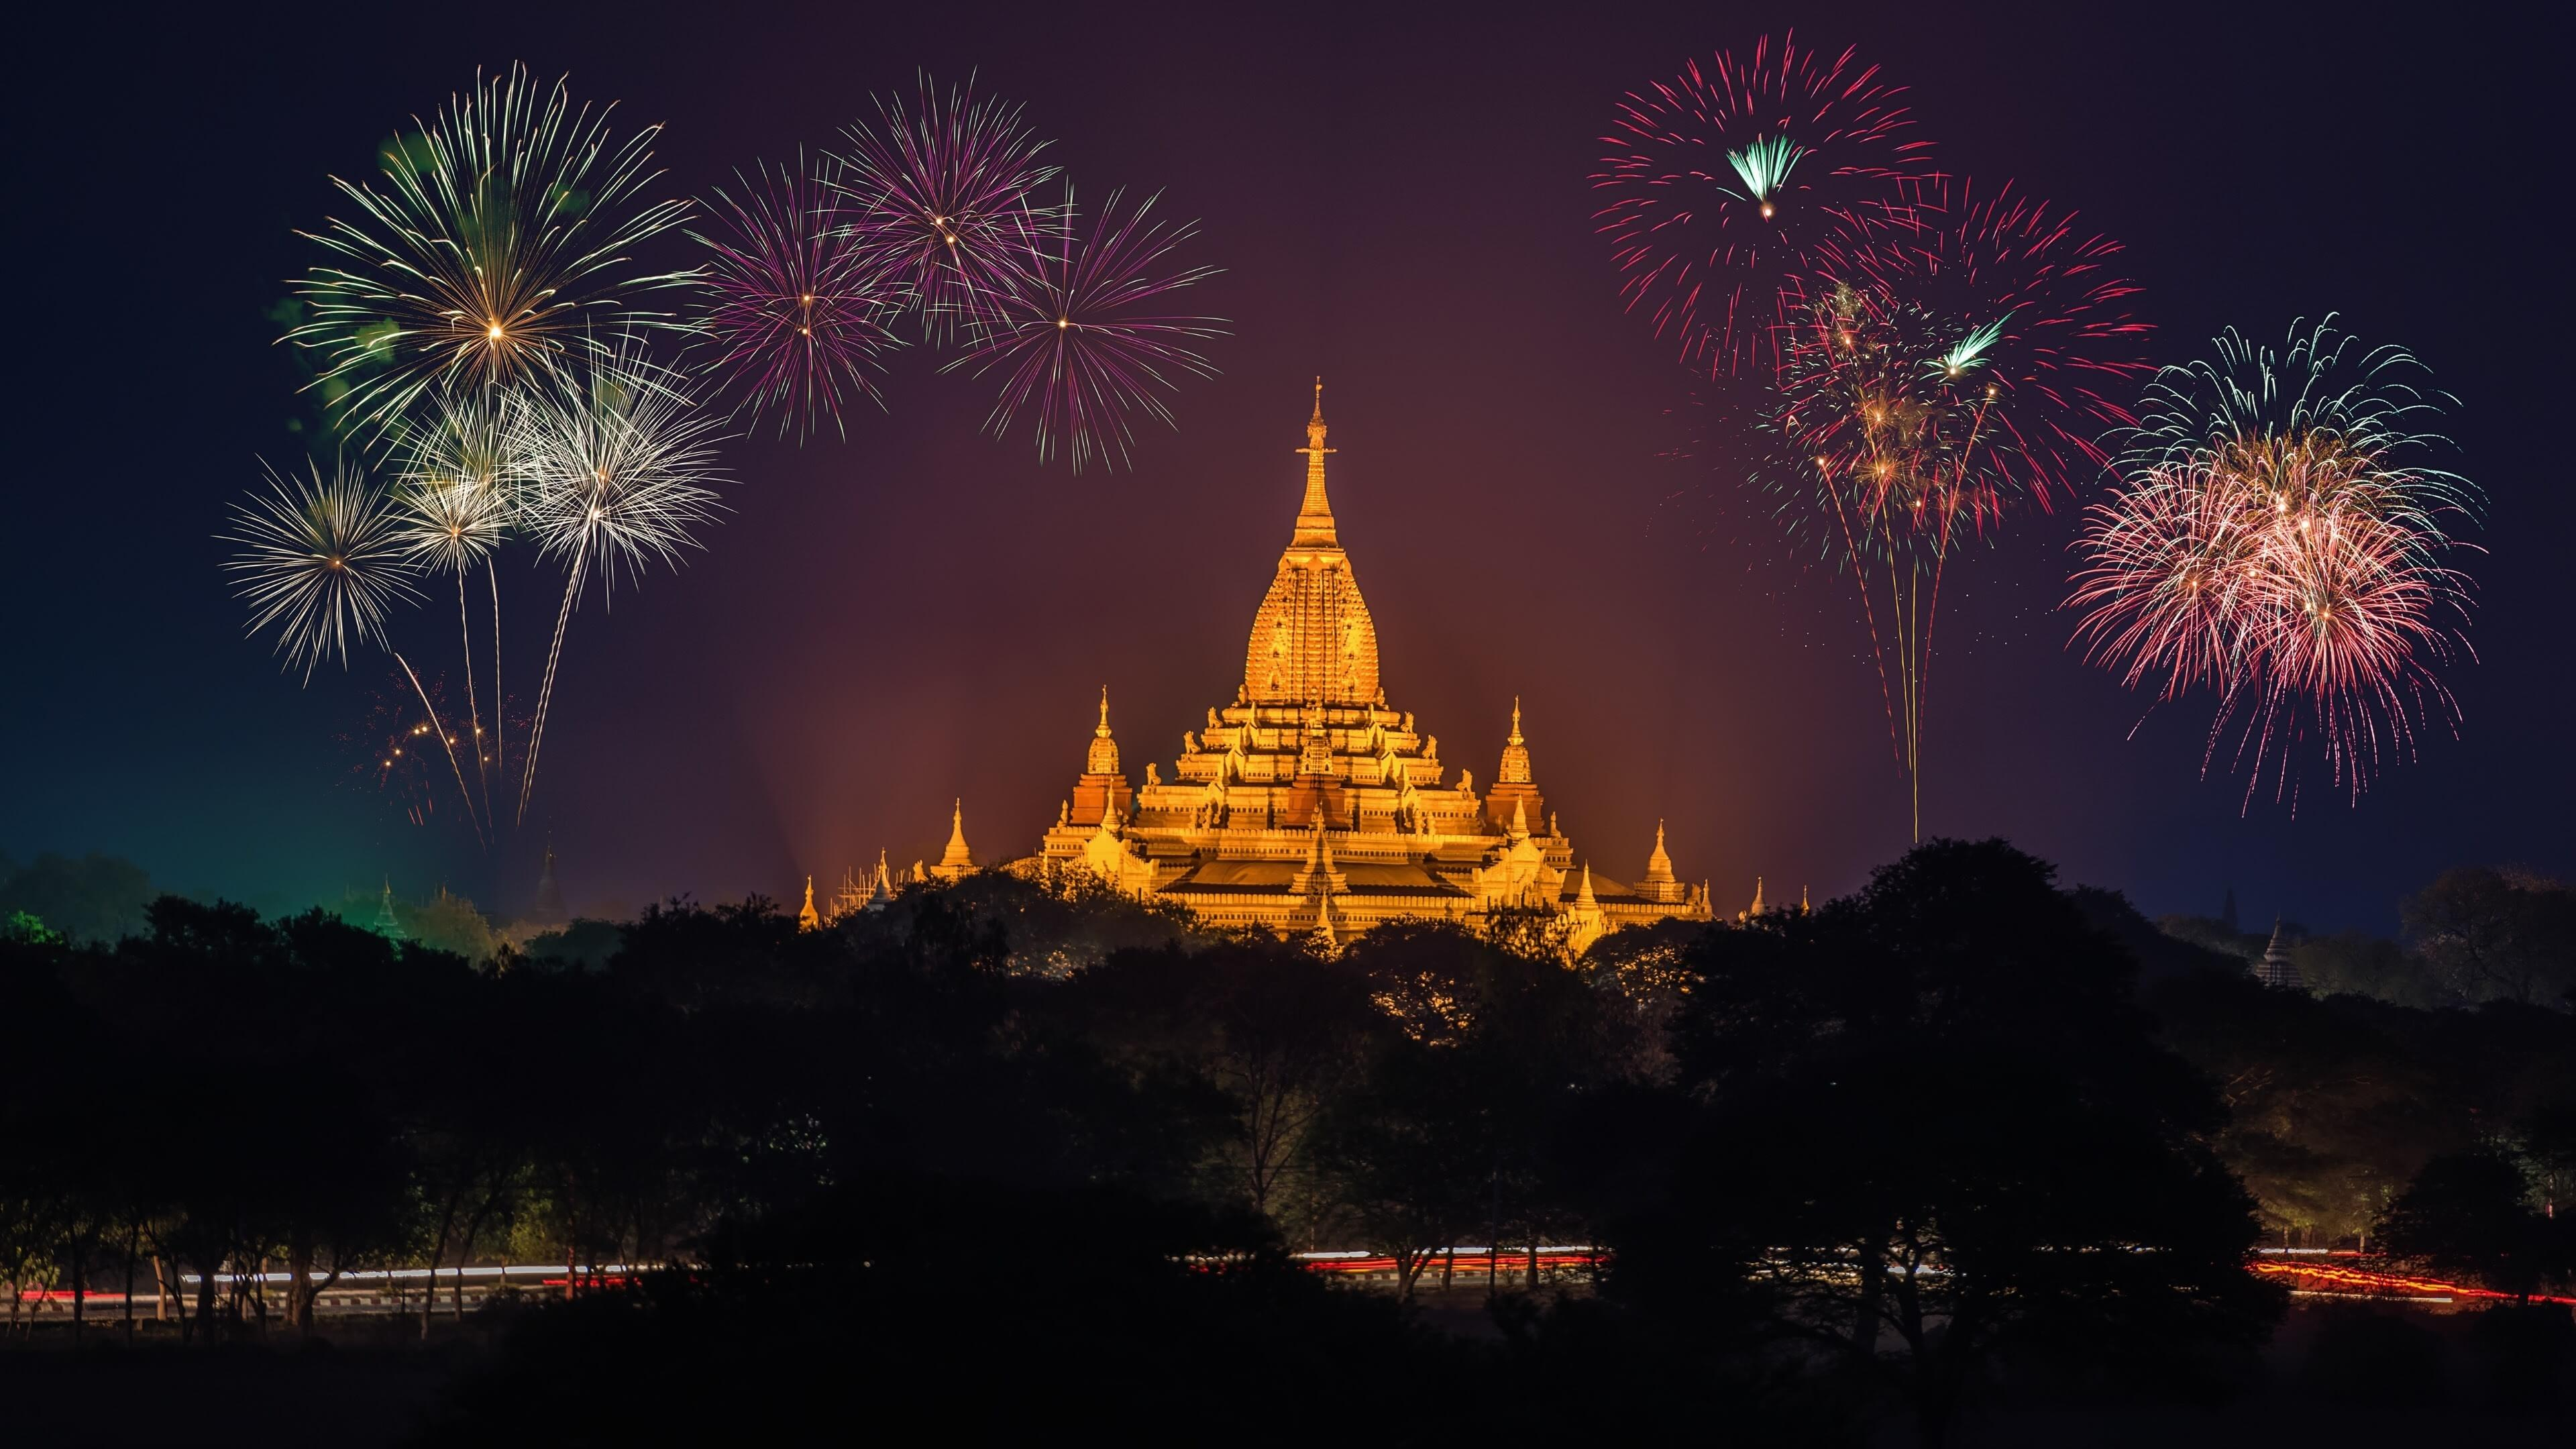 ananda-temple-fireworks-myanmar-others-9818